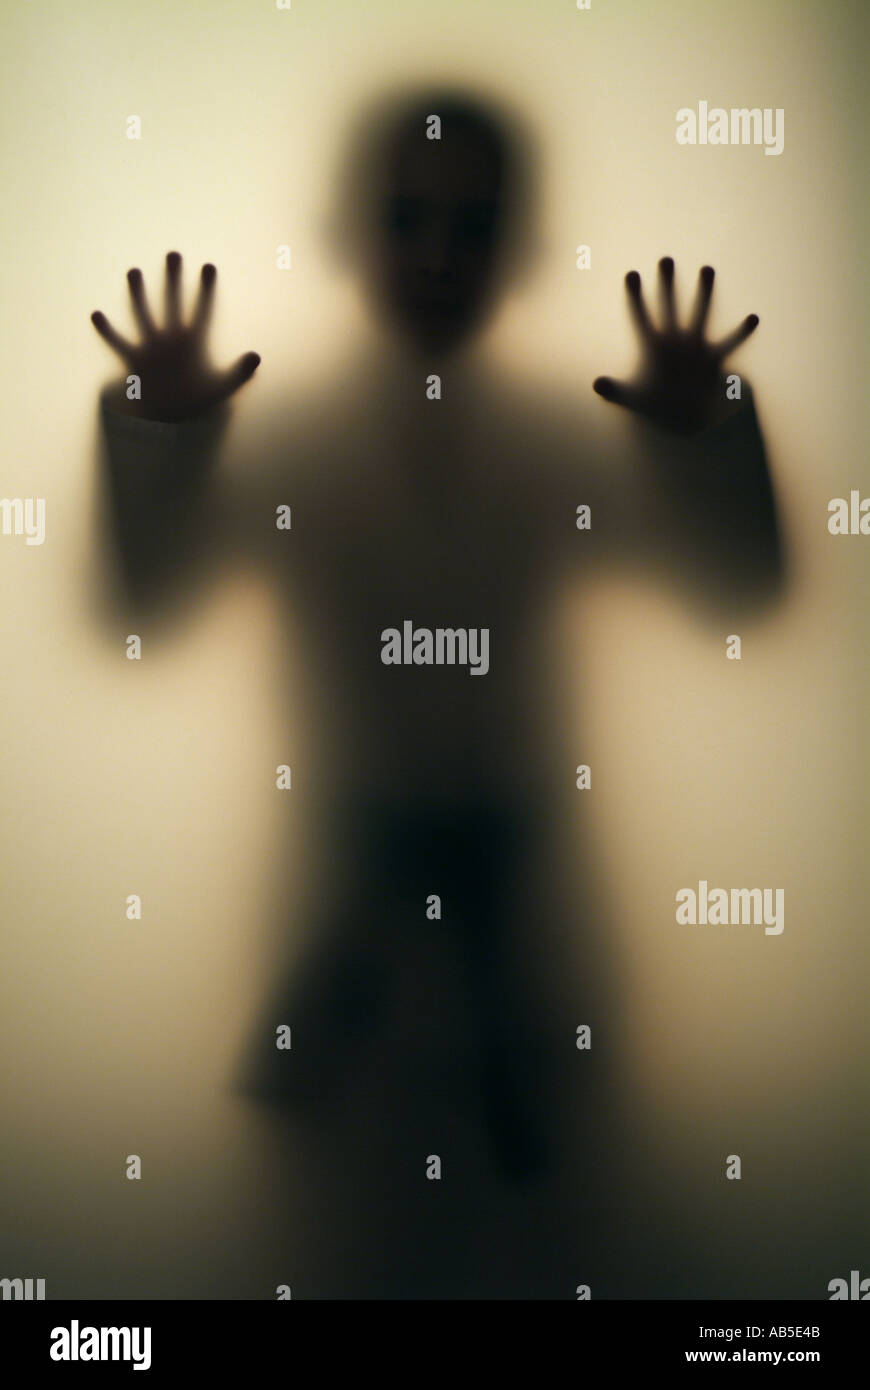 Boy 7, 8, 9, 10, 11, 12, 13, 14 years old  Figure behind transparent wall - Stock Image